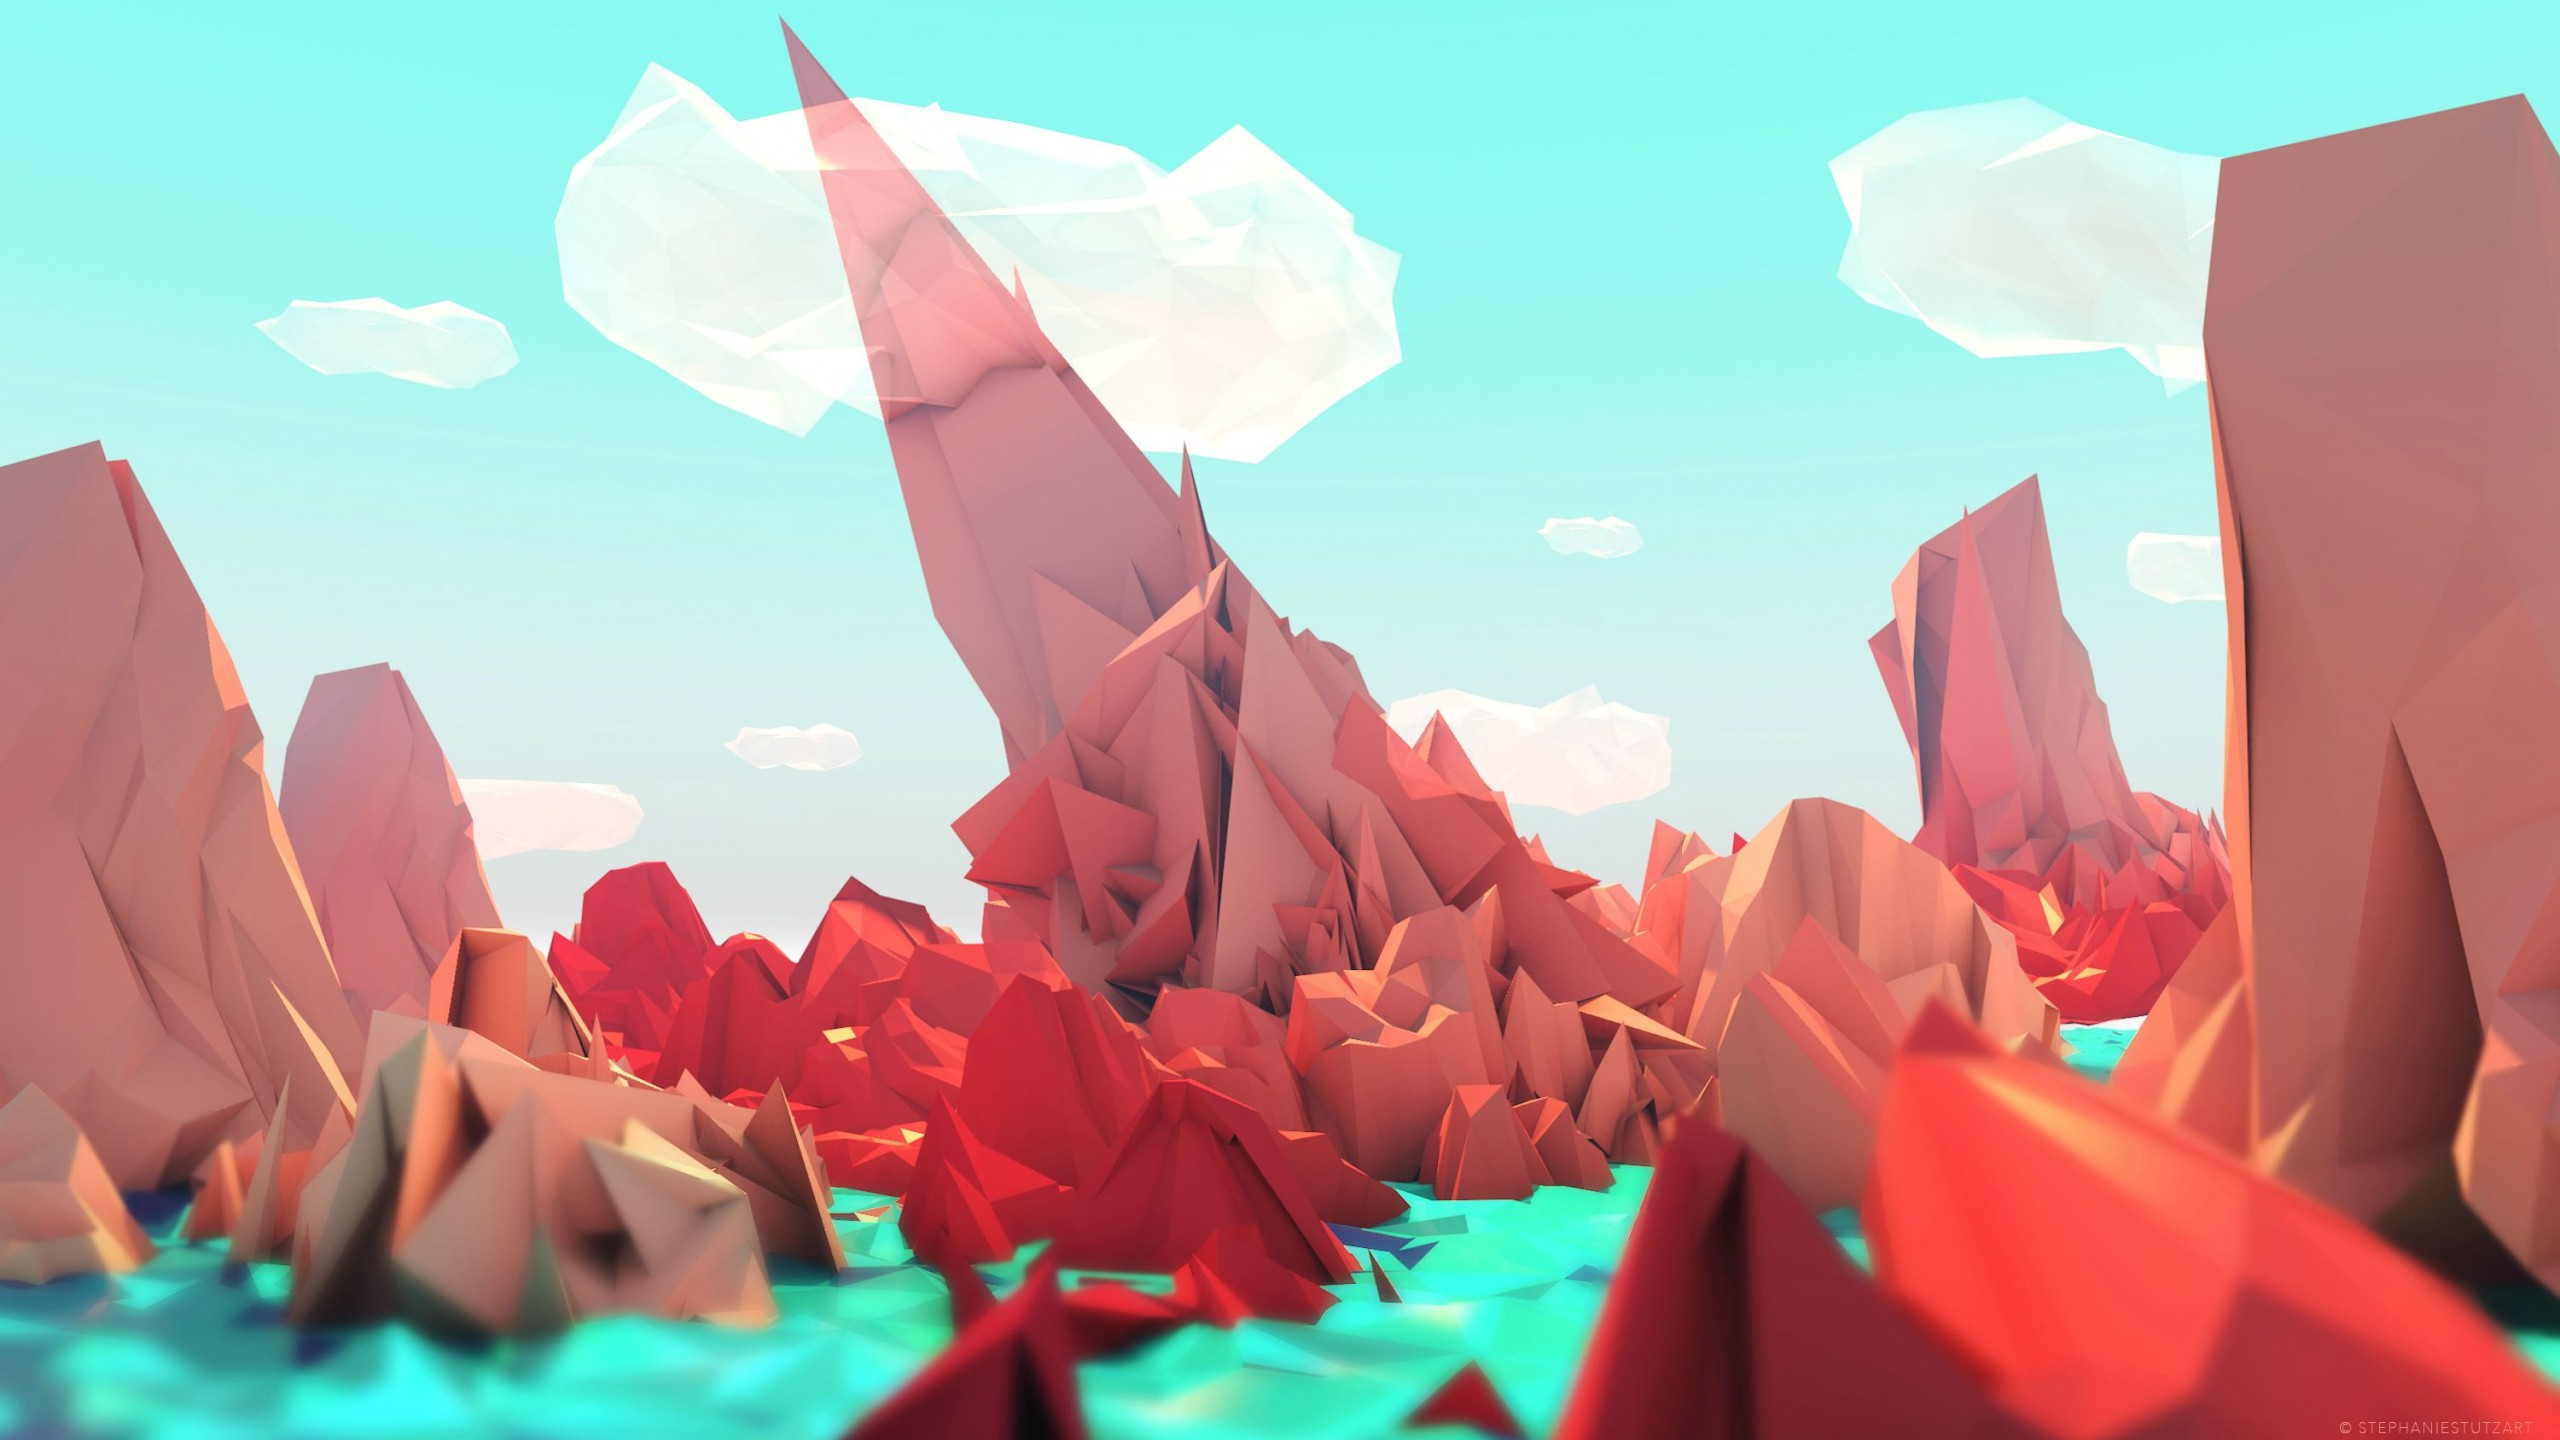 Low Poly Hd Wallpaper Background Image 2560x1440 Id 950460 Wallpaper Abyss